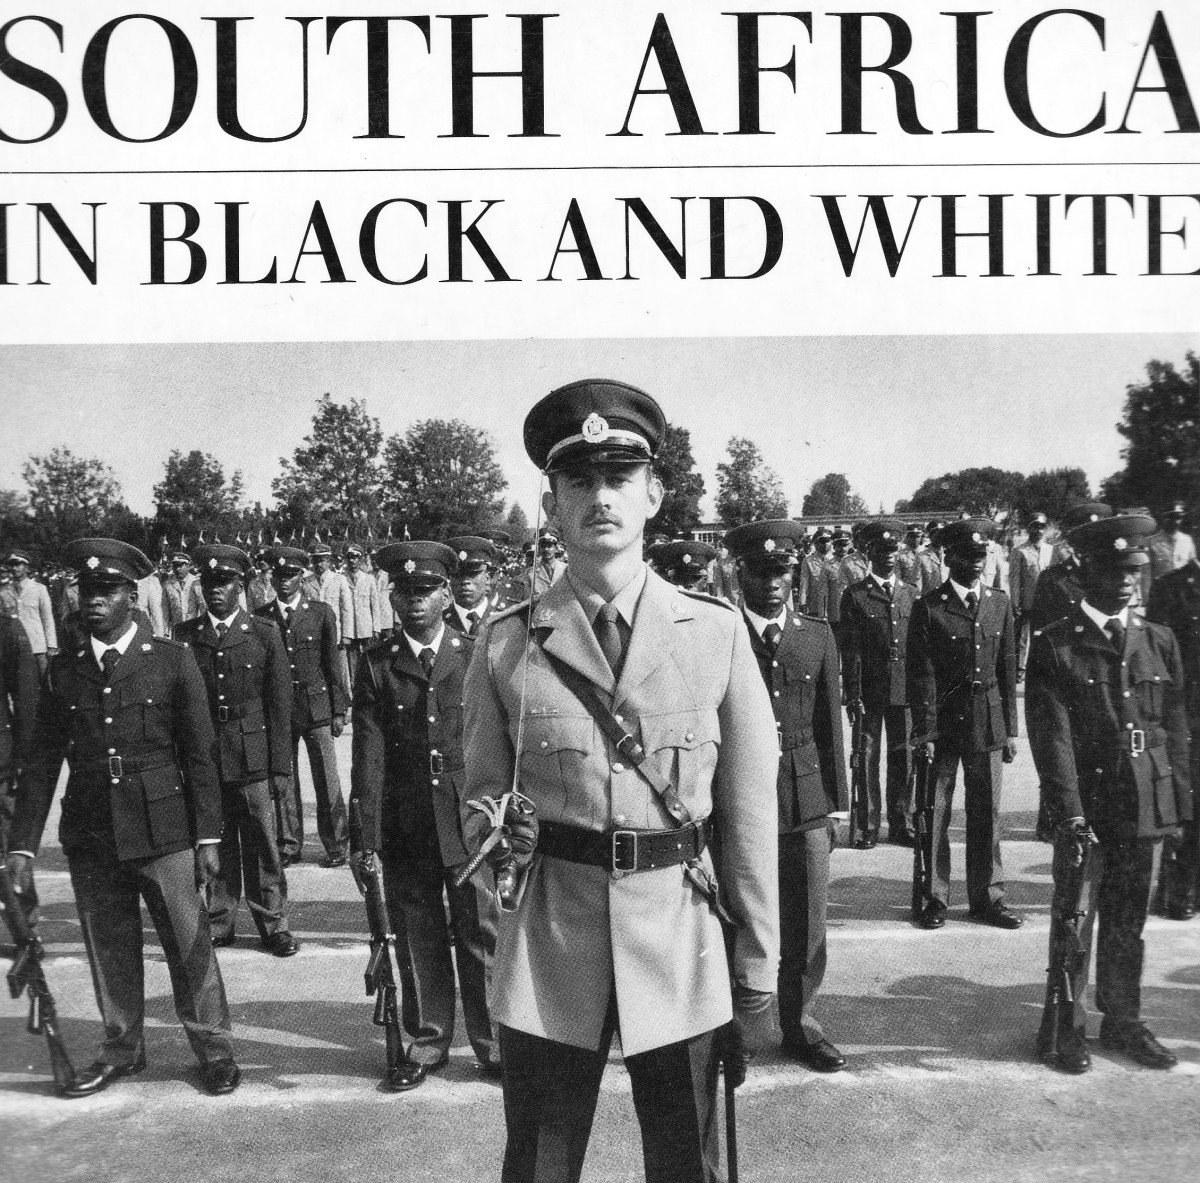 """South African Police cadre in a drill and practically and literaly in """"Black and White"""